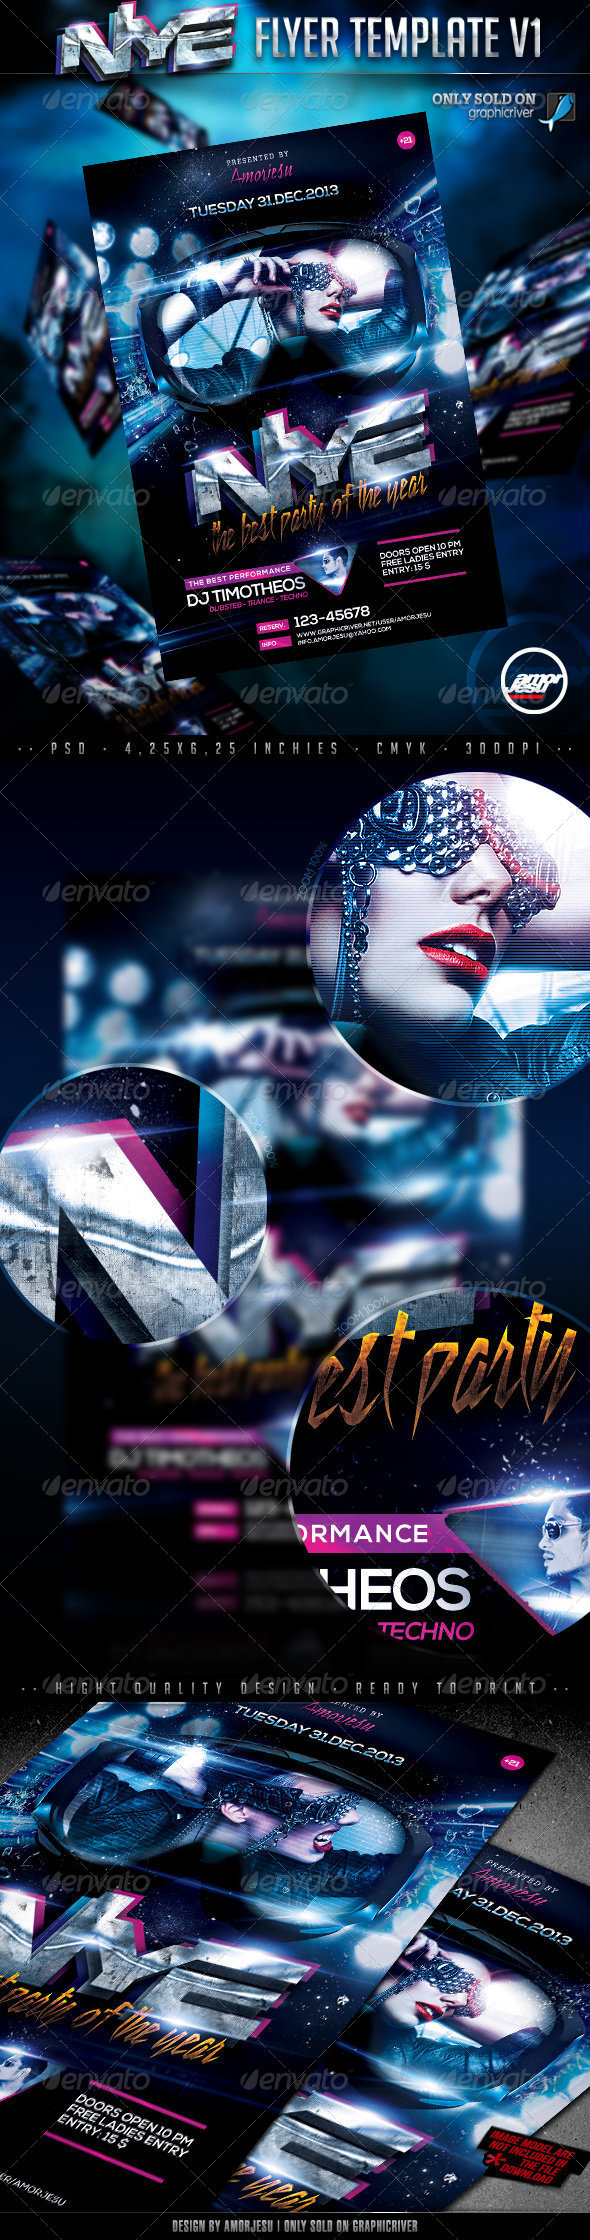 New Year Eve Flyer Template V1 - Clubs & Parties Events